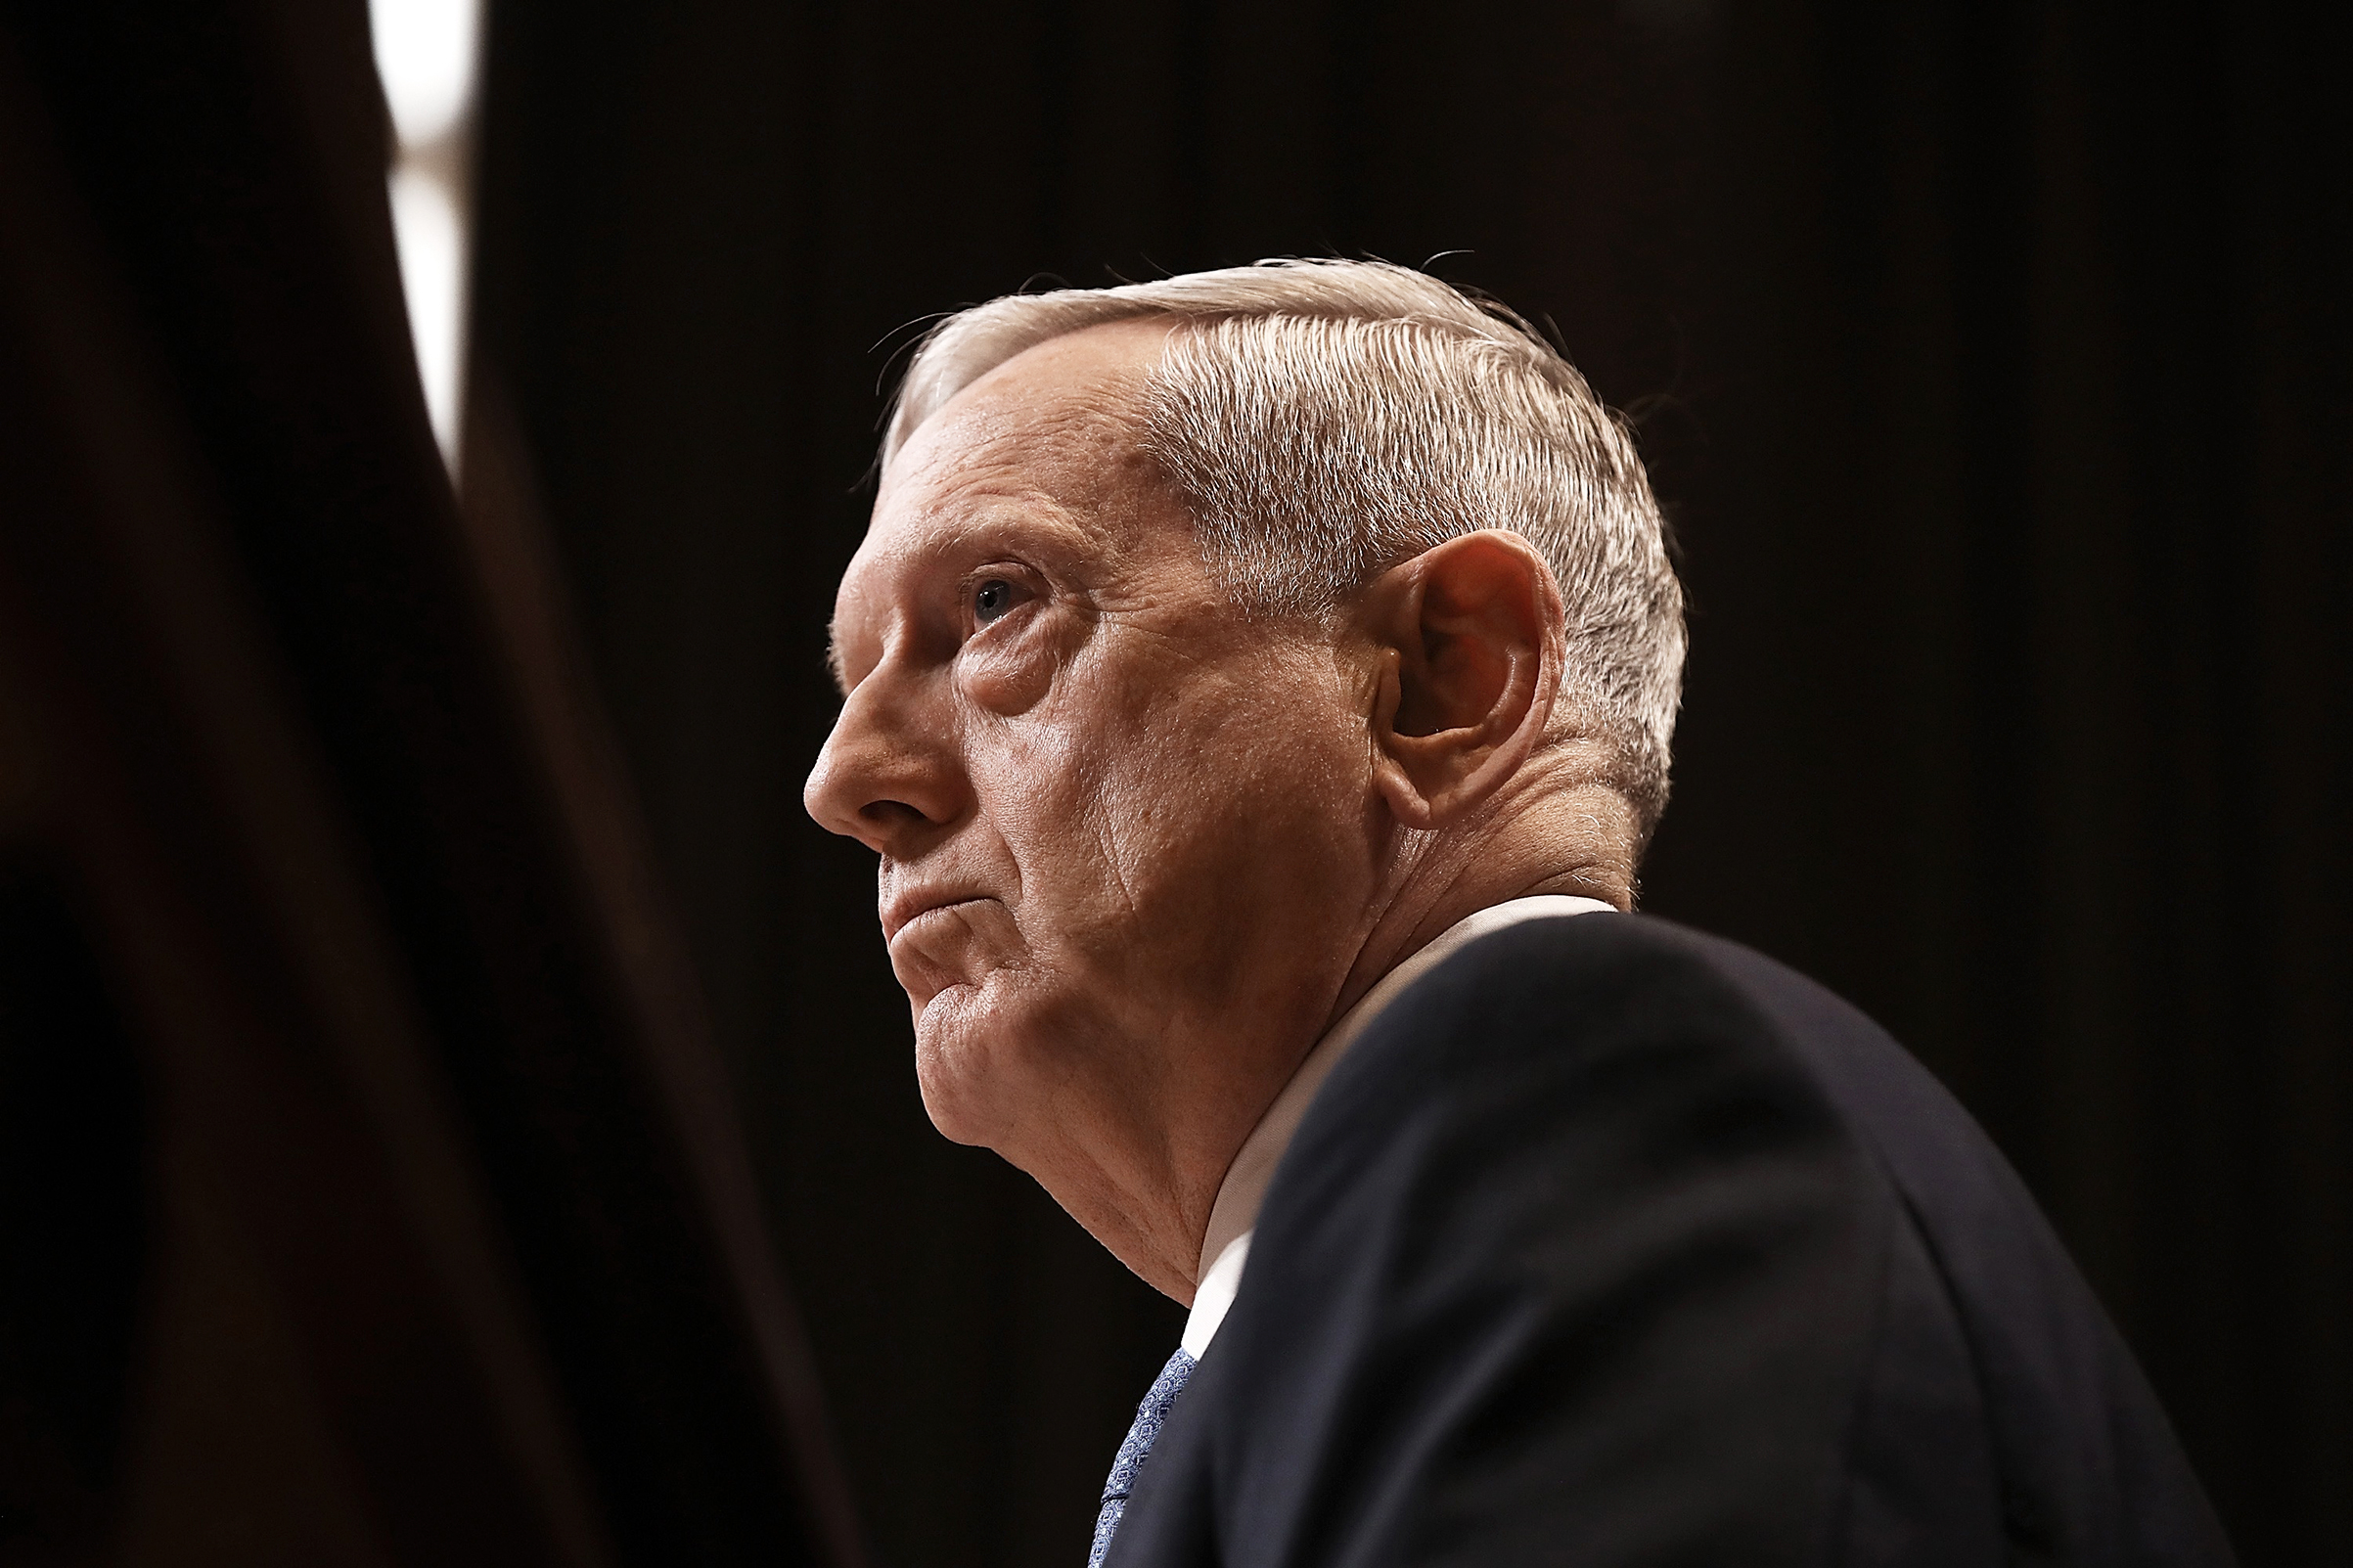 Defense Secretary James Mattis testifies before the Senate Appropriations Committee March 22, 2017 in Washington.